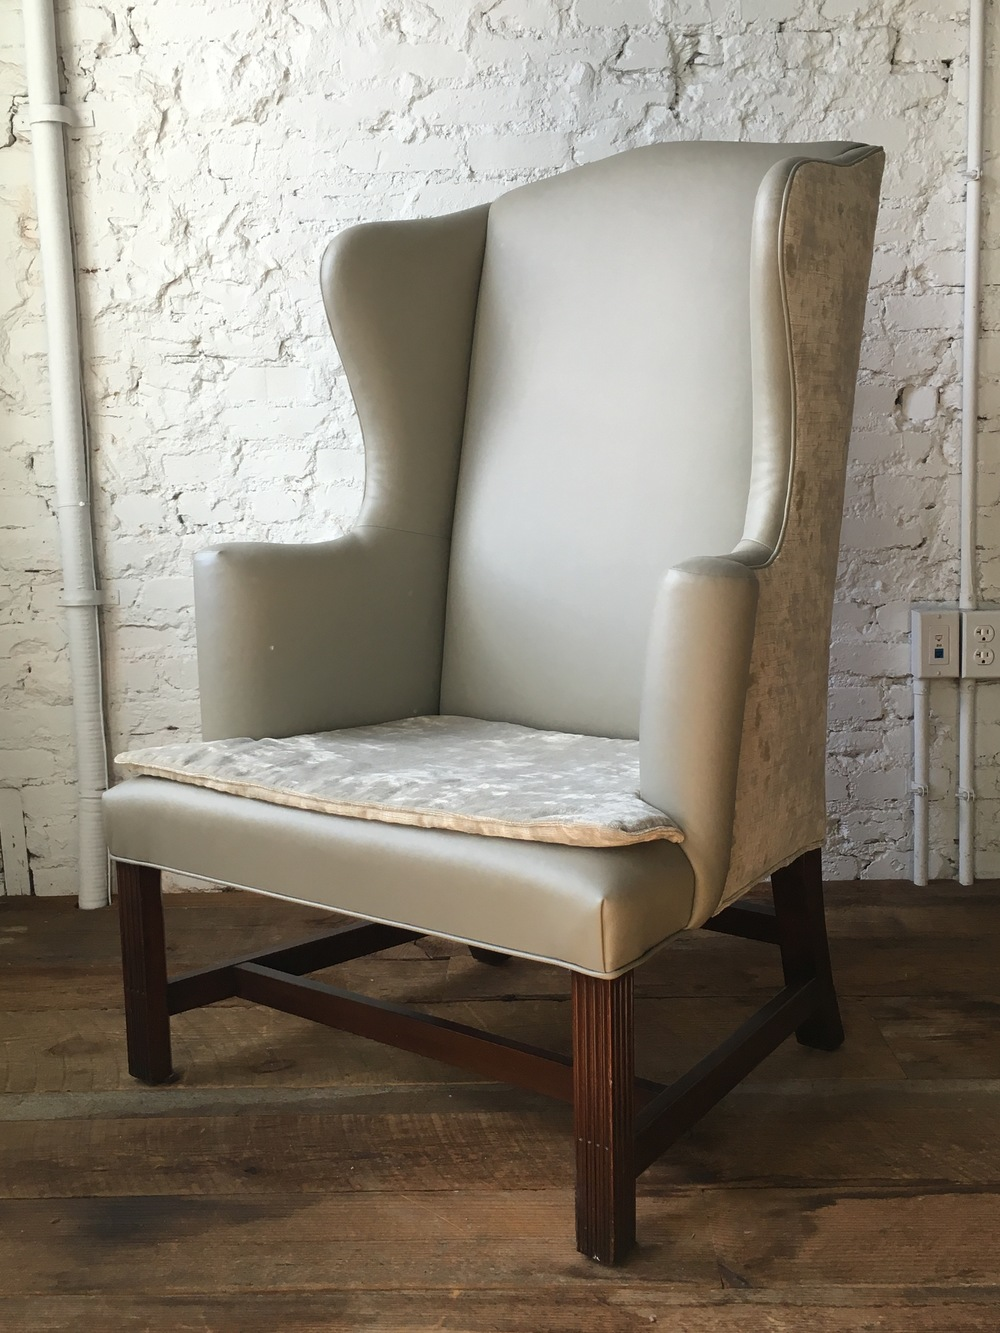 WING CHAIR IN LEATHER AND SHEARED VELVET. DARRYL CARTER BOUTIQUE. WASHINGTON DC.